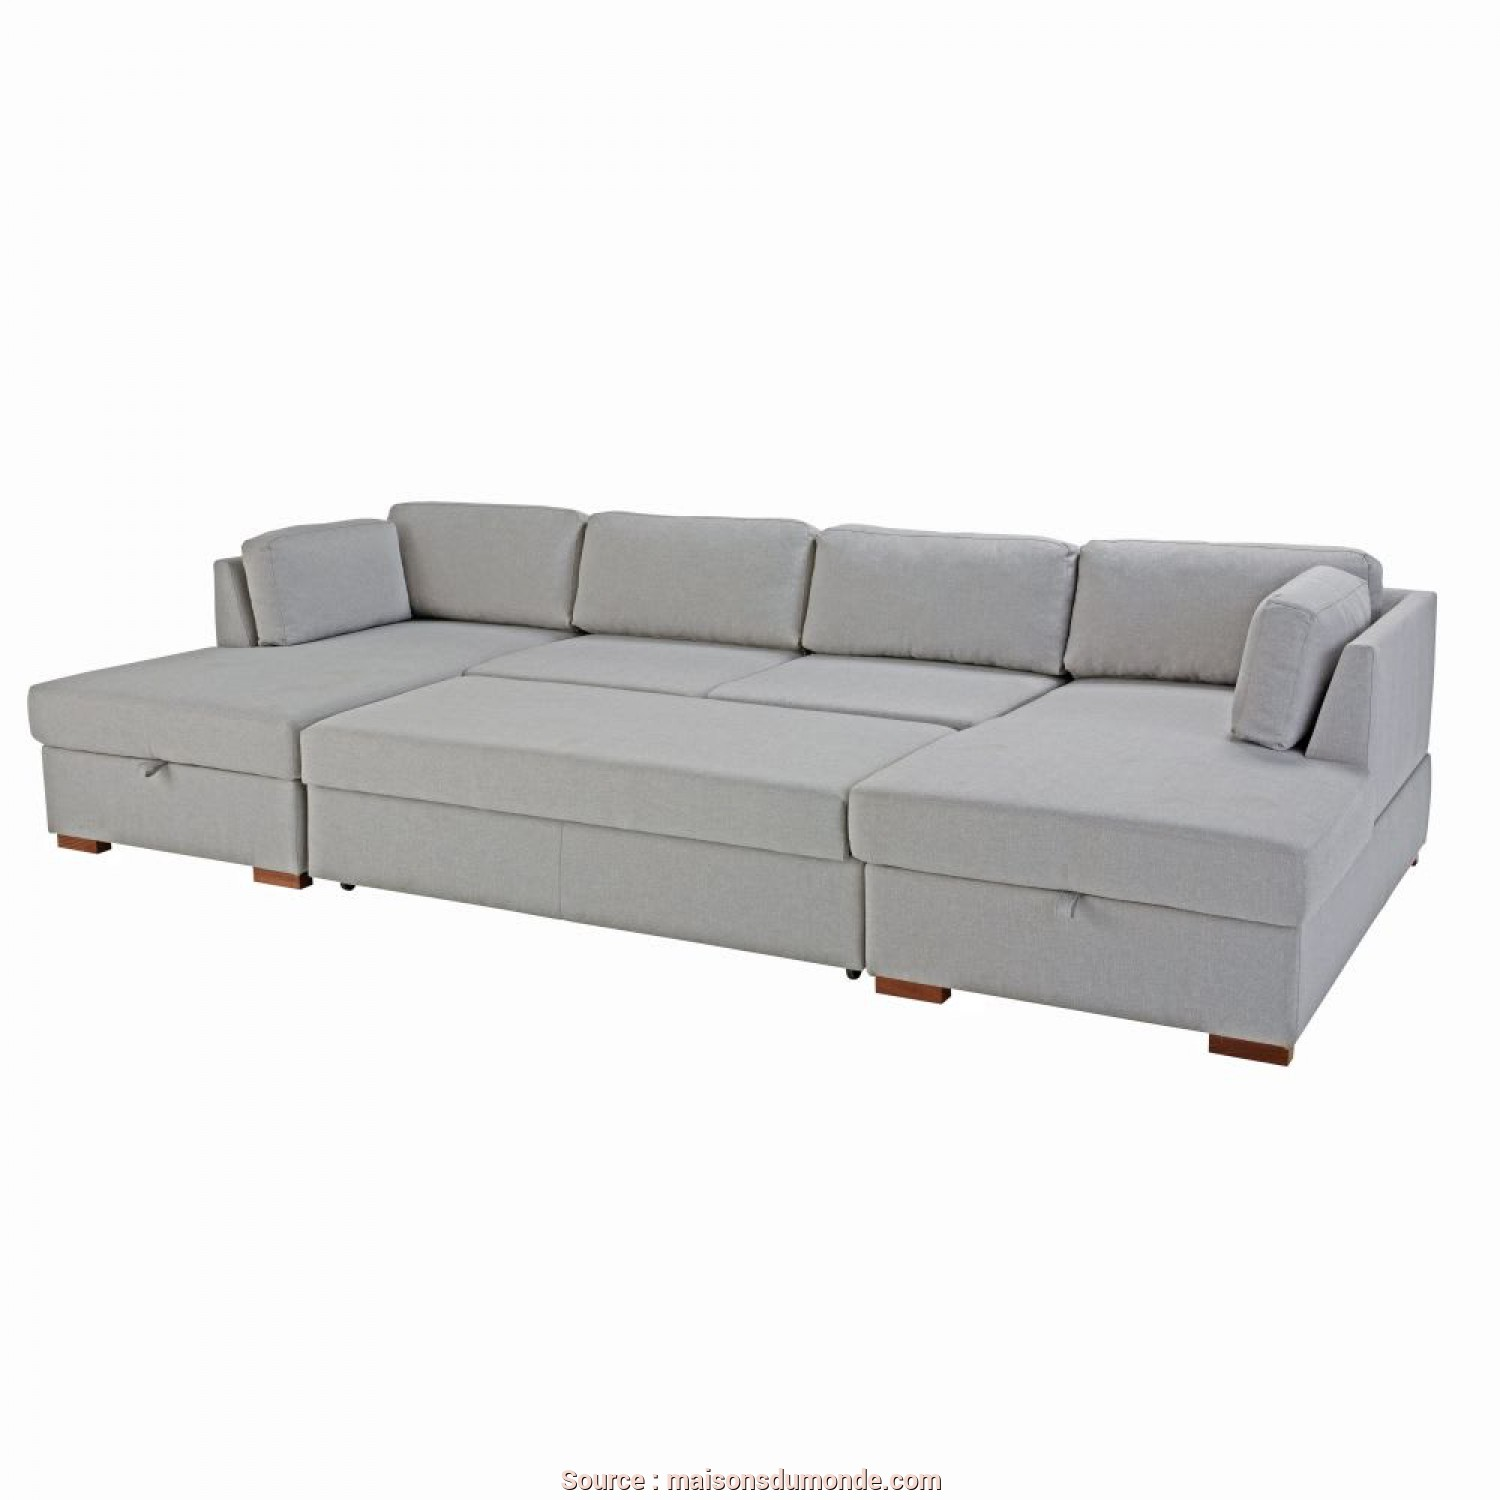 Divano Time Square Maison Du Monde, Eccellente Light Grey 7-Seater U-Shaped Sofa, Times Square